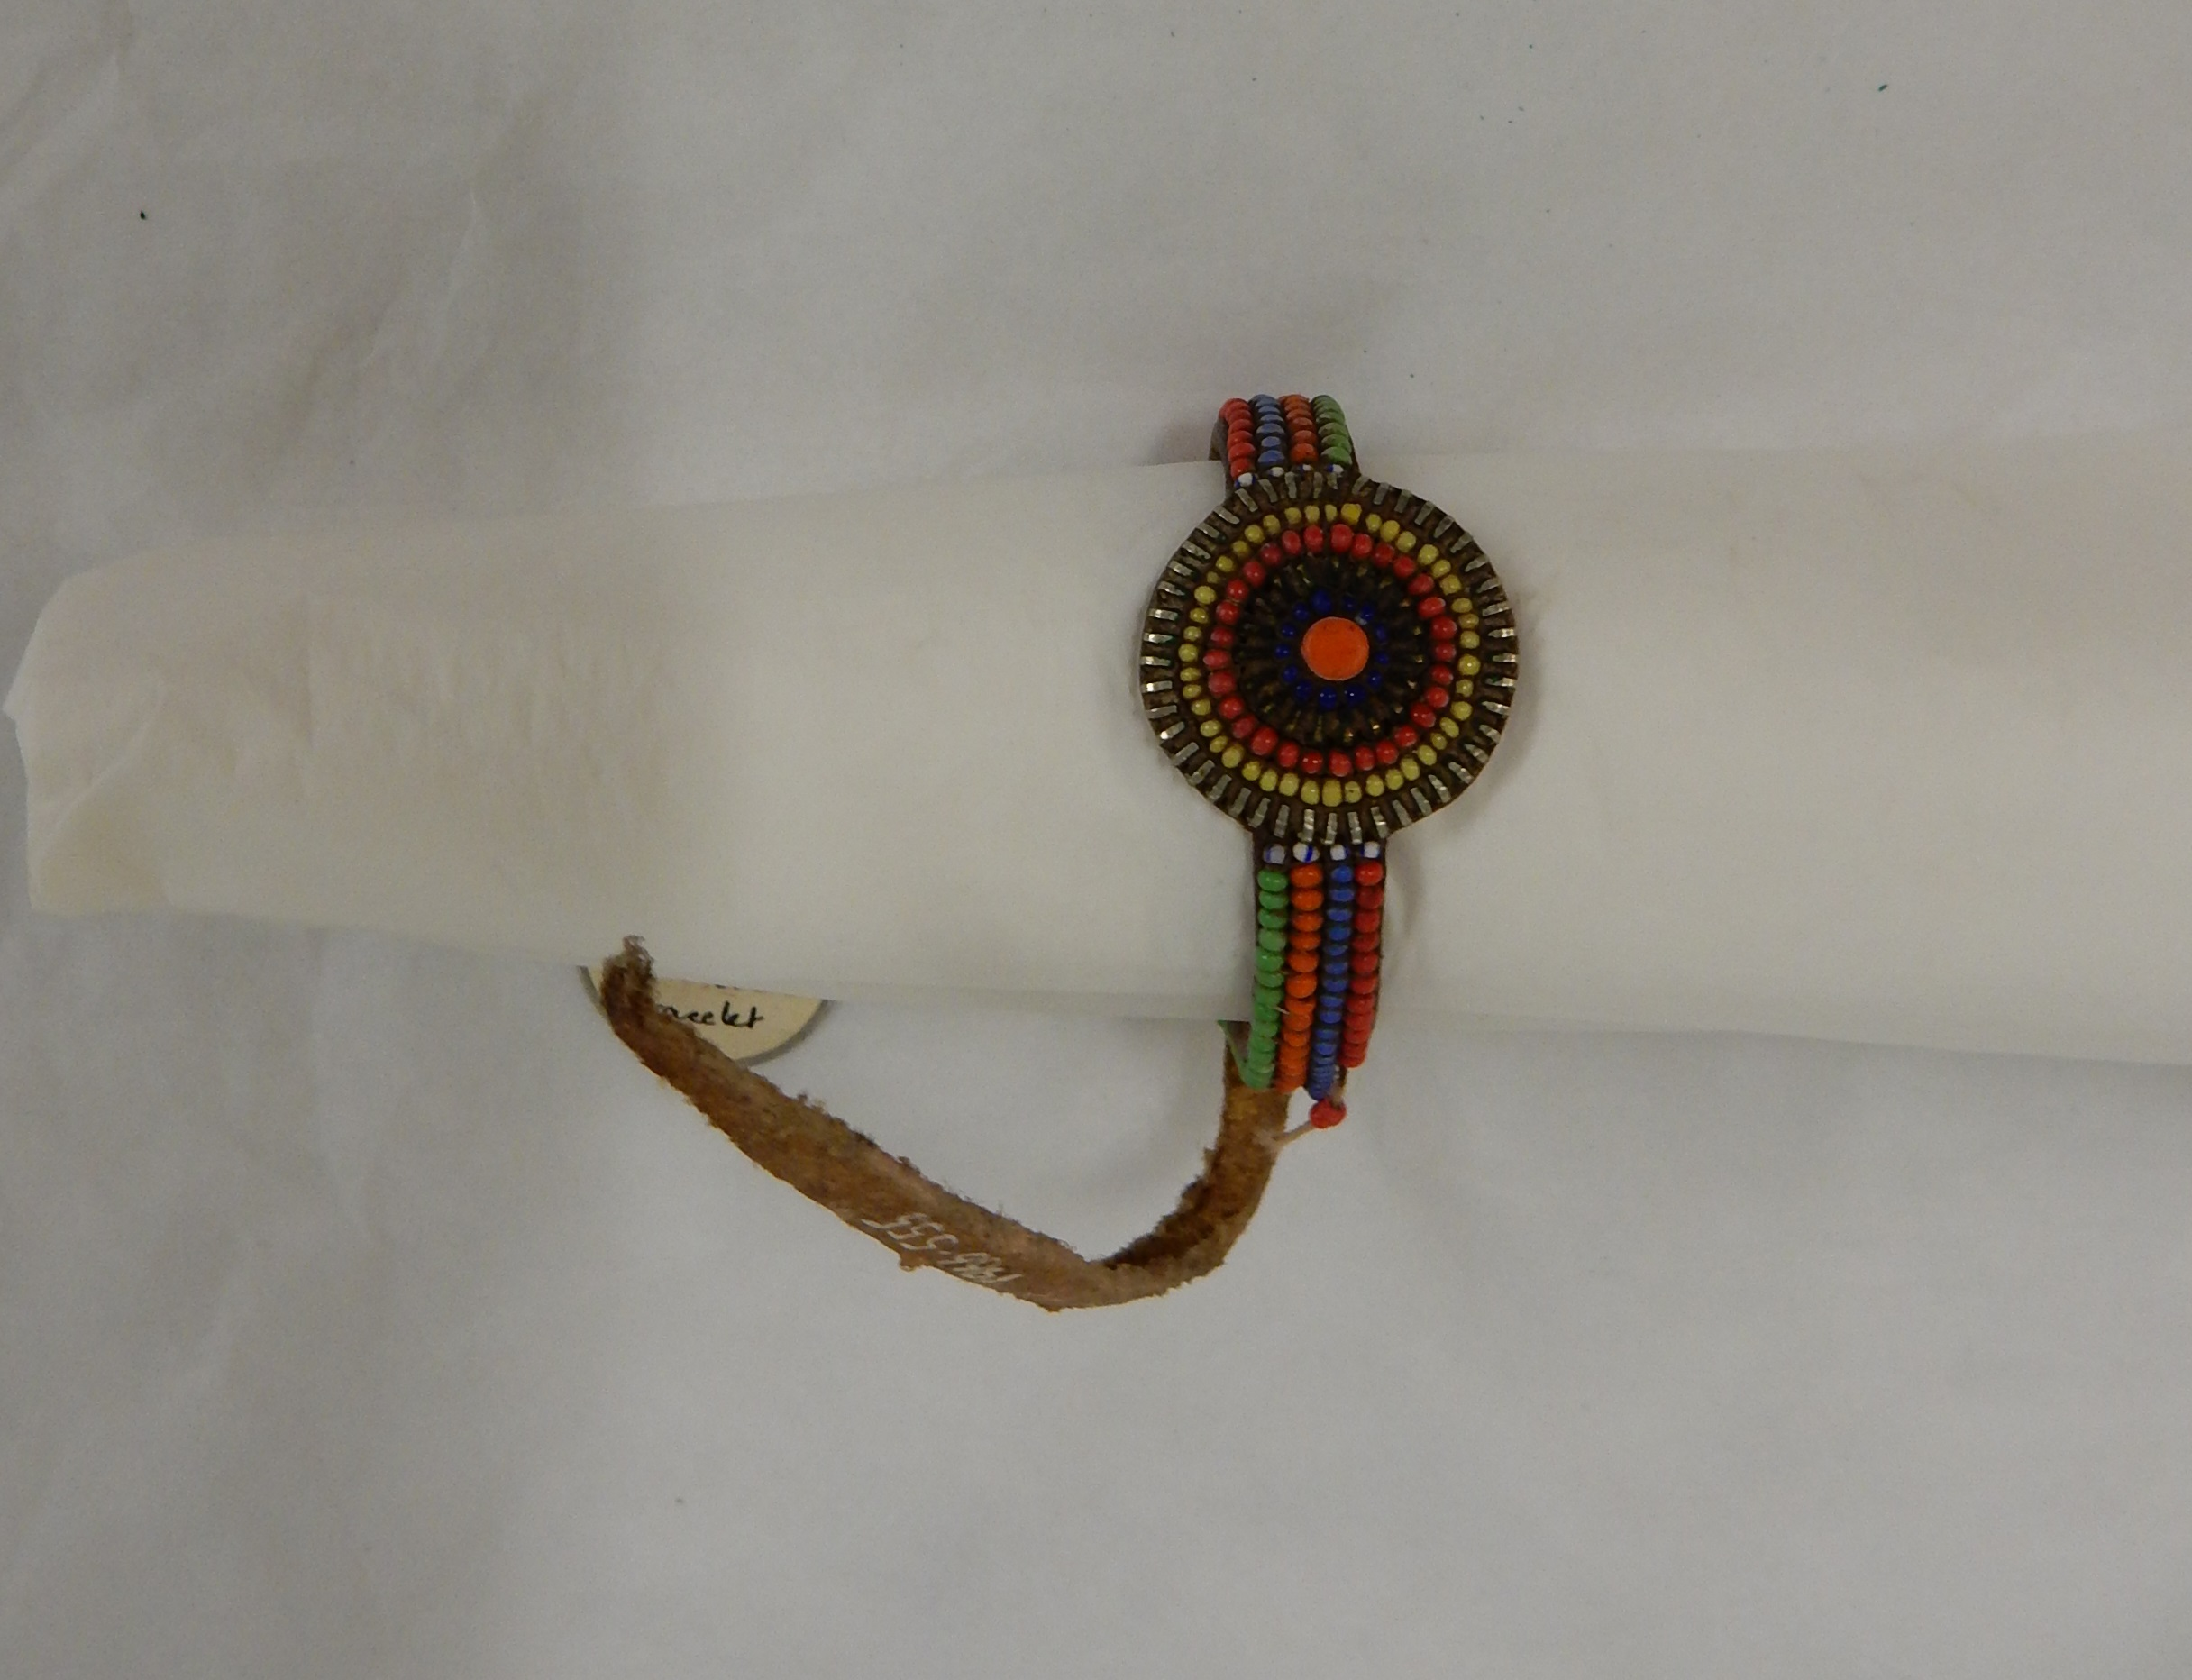 Woman's leather bracelet decorated with beads, in form similar to a wrist watch